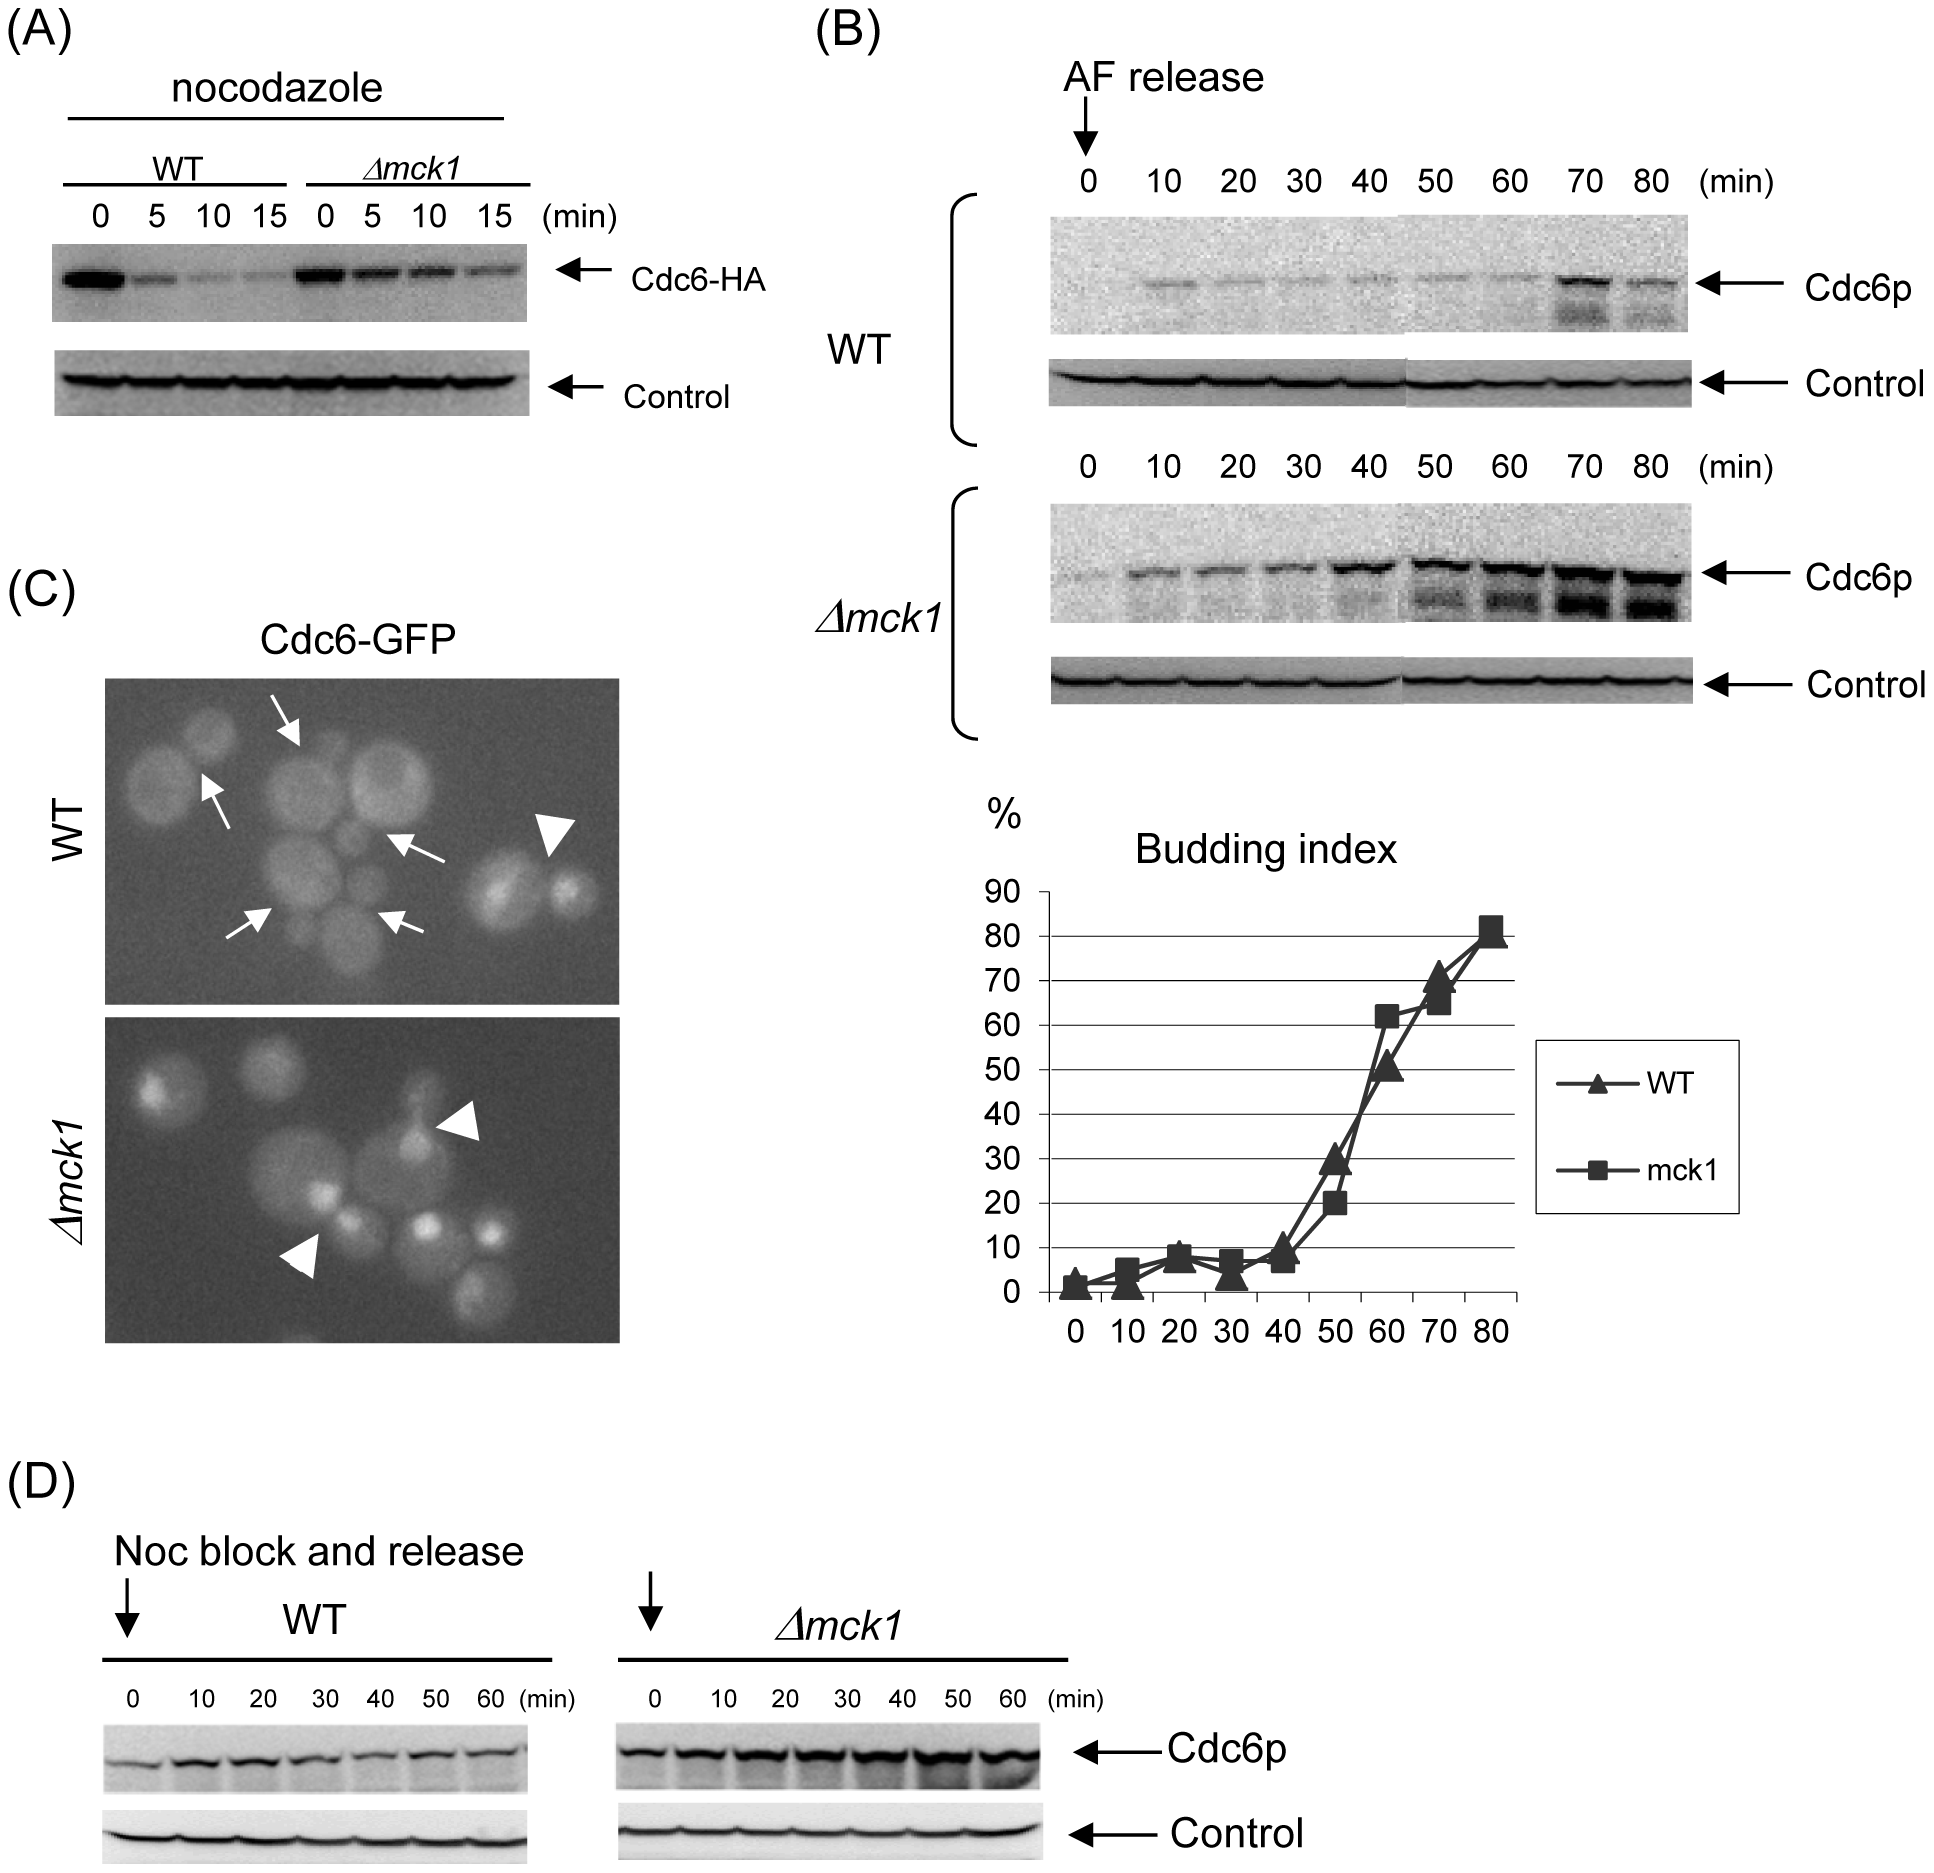 Mck1p is required for Cdc6p degradation.